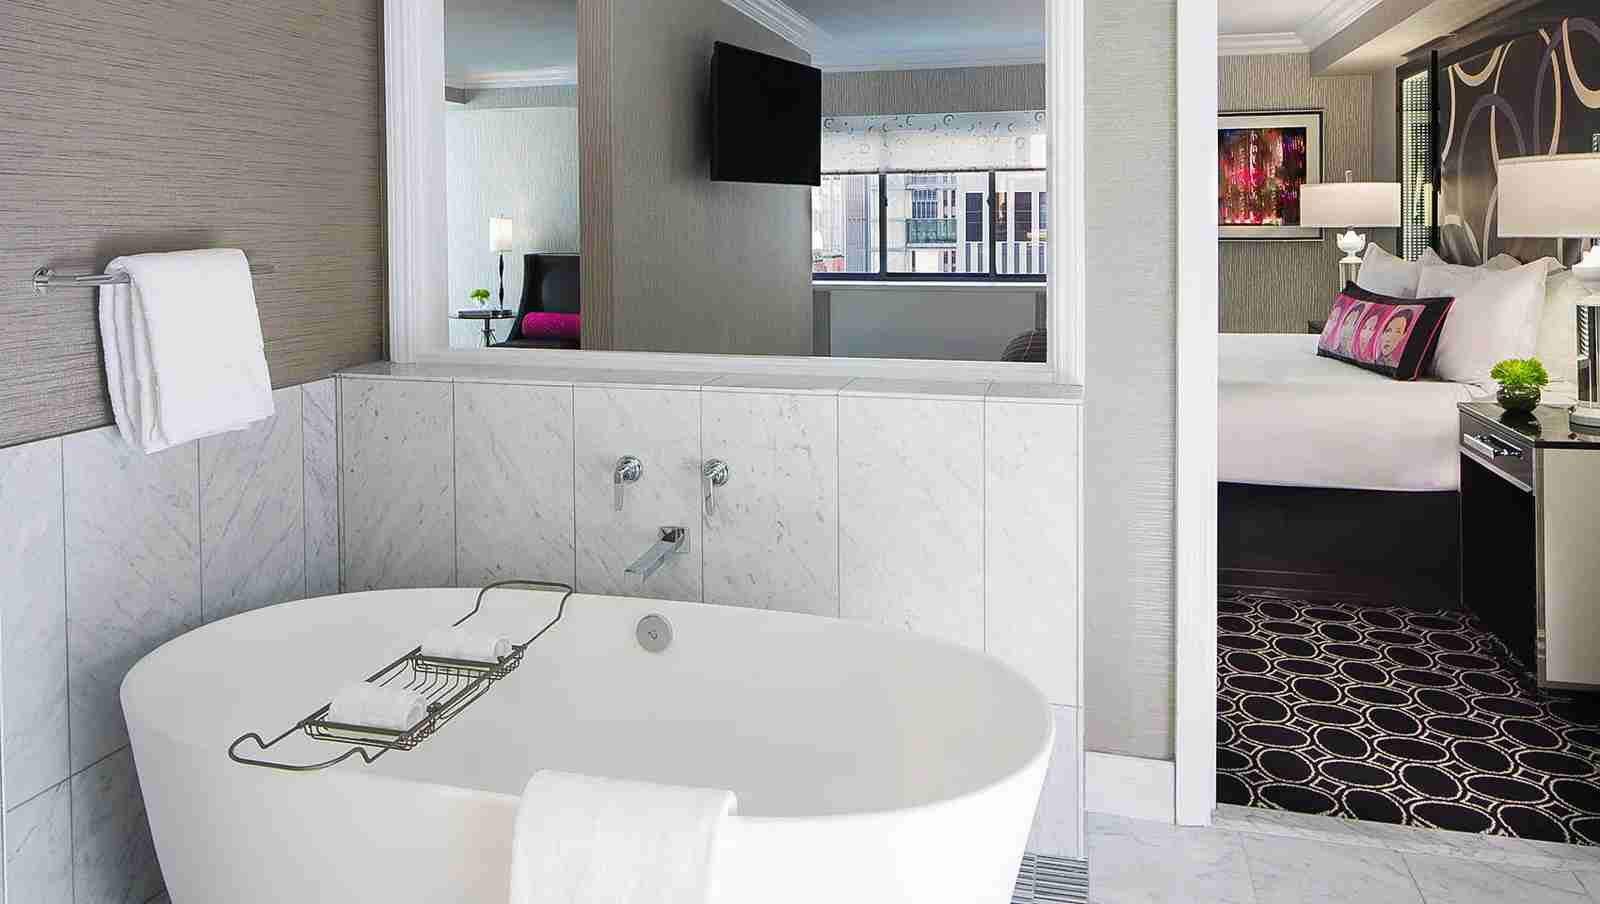 The Kimpton Muse Spa Suite. (Photo courtesy of Kimpton Muse)